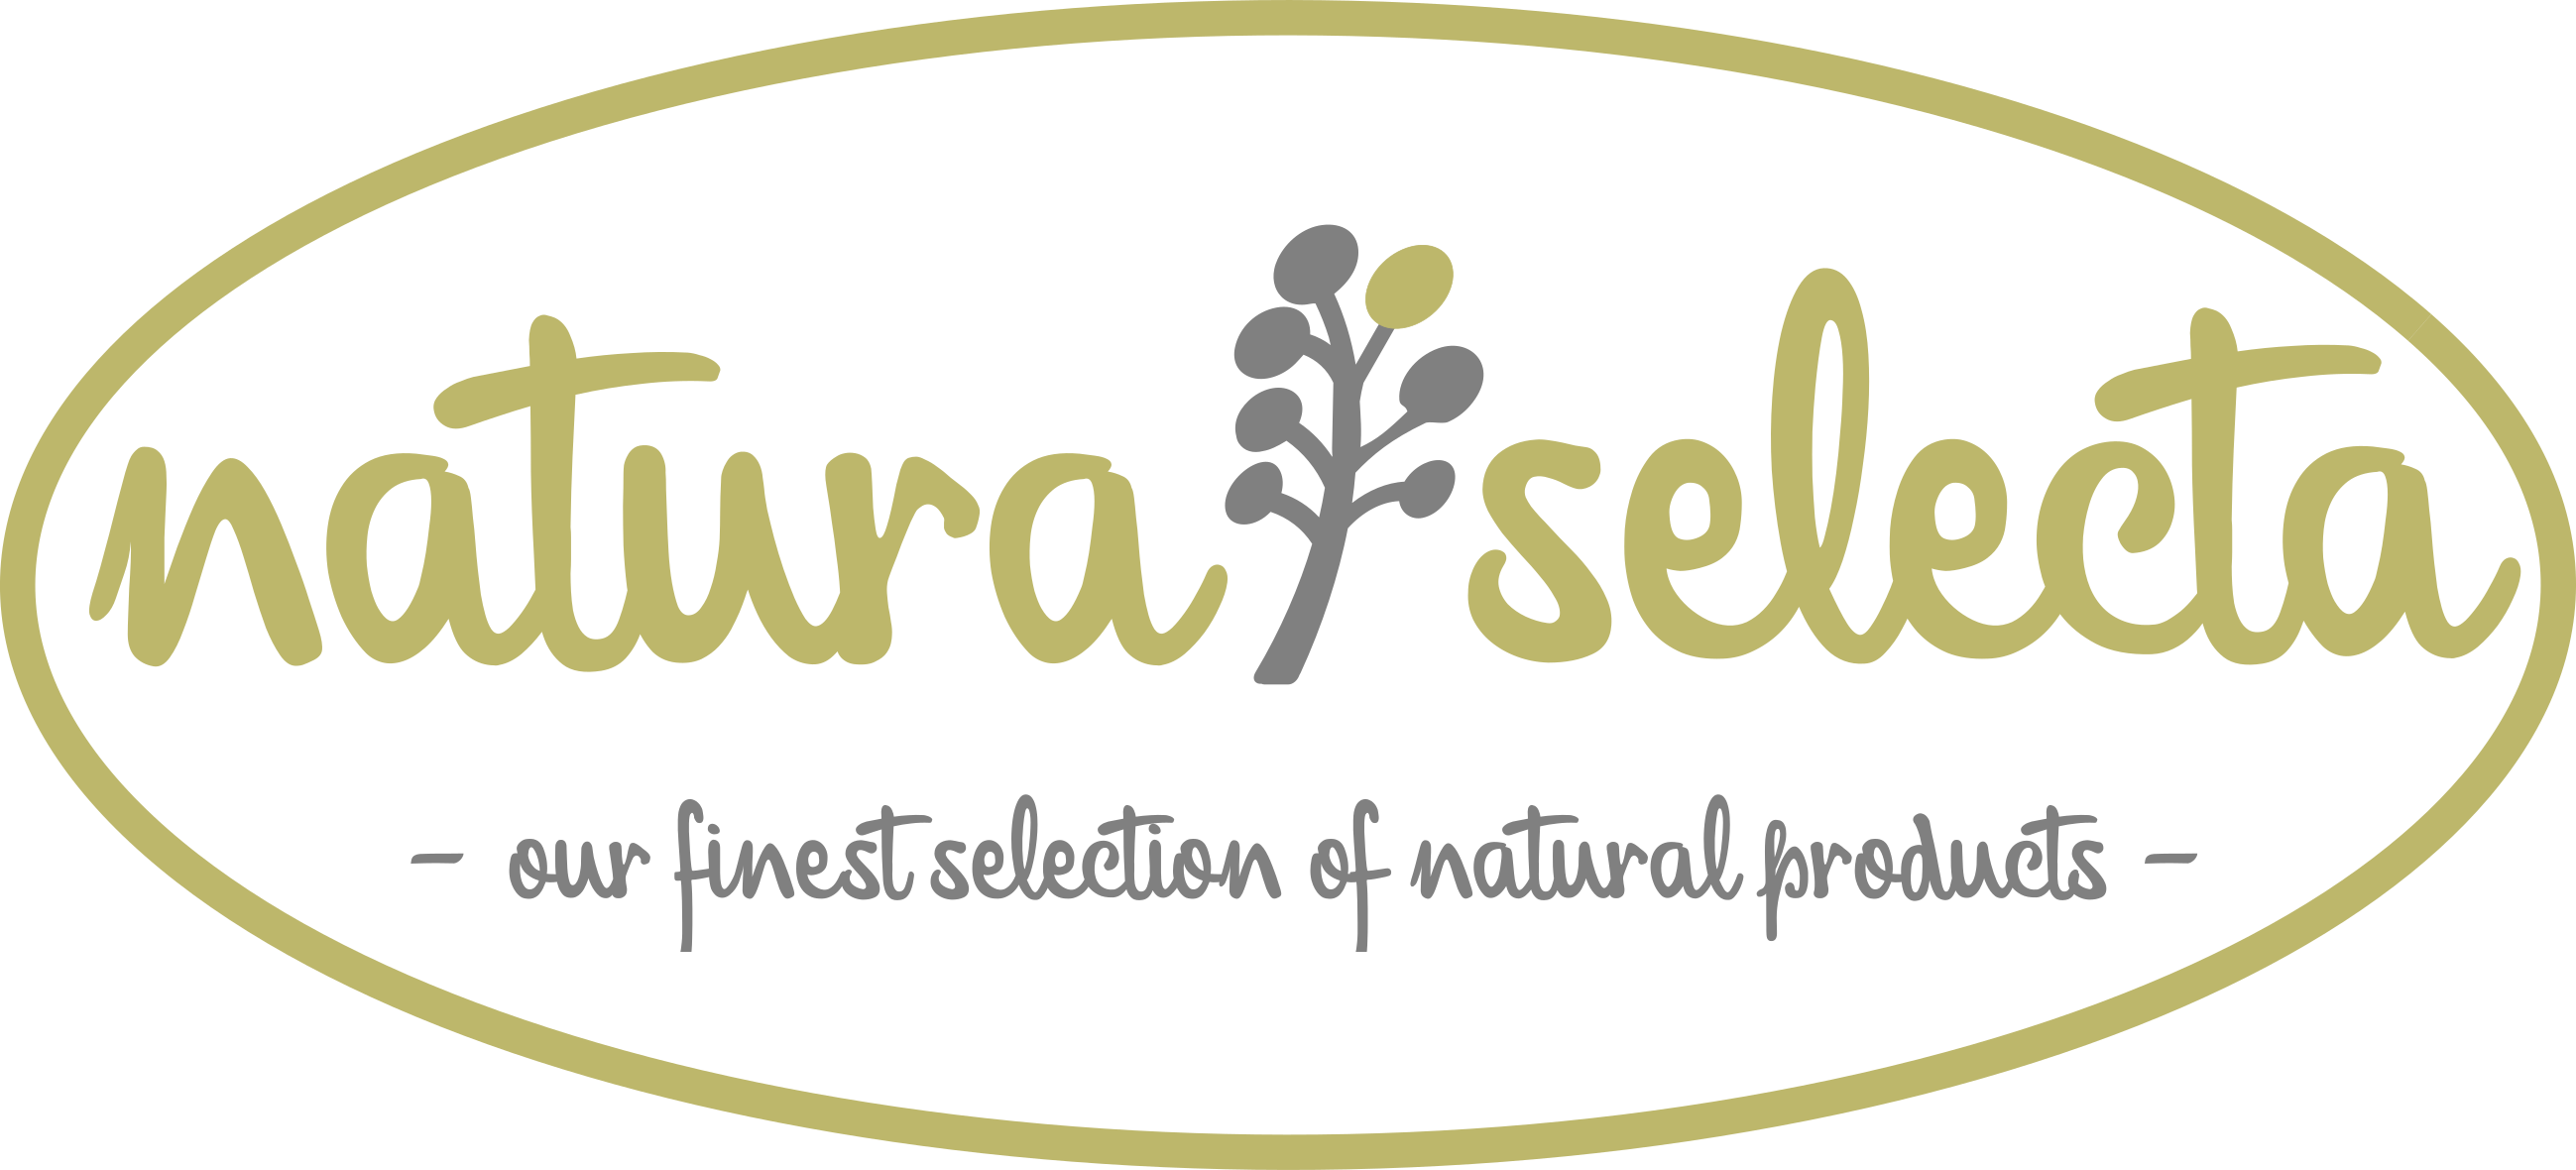 Natura Selecta